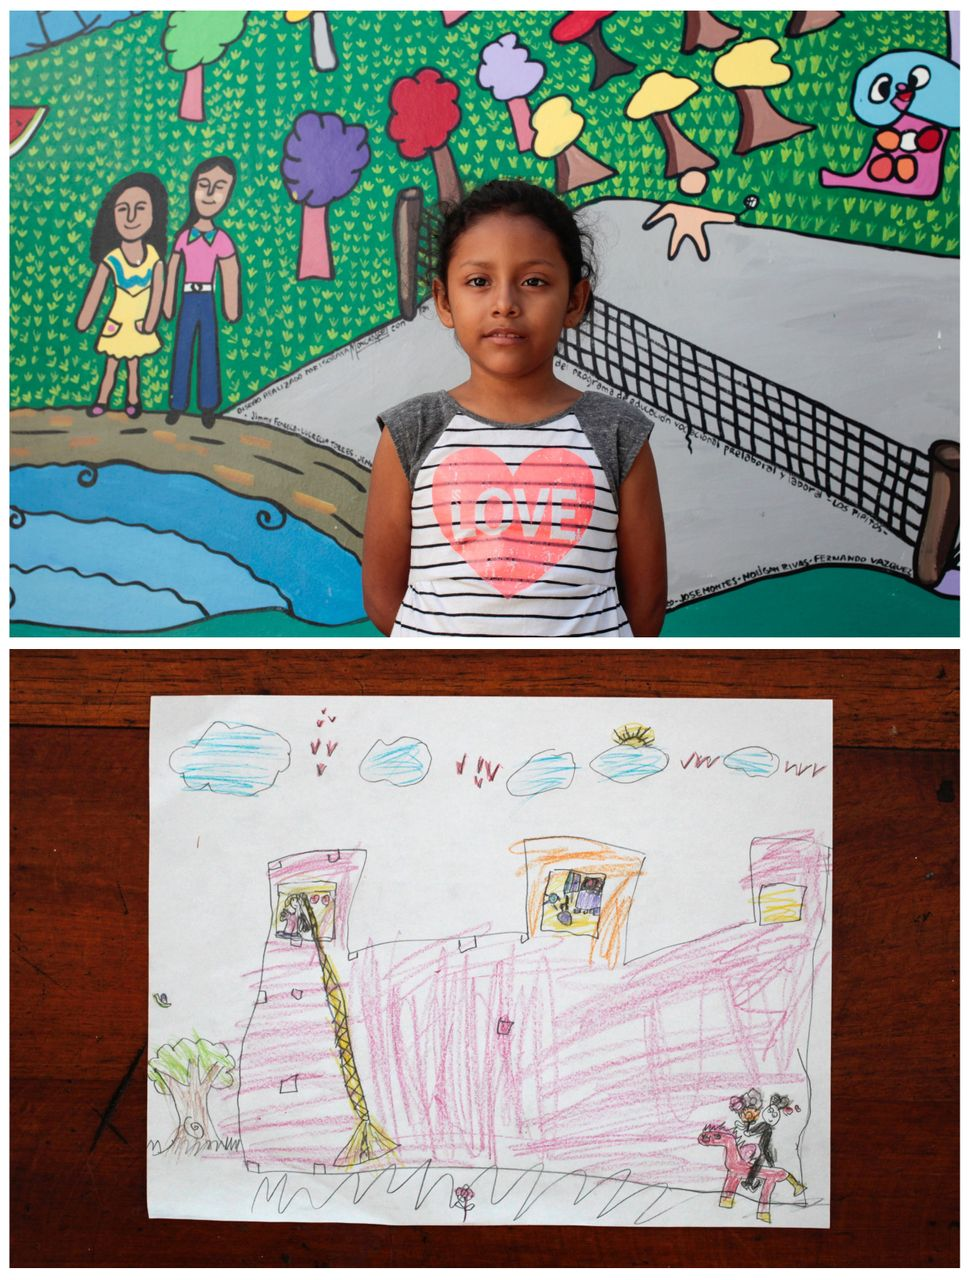 <strong>Onari Abigail, 8, from Managua, Nicaragua: </strong>Onari wants a castle full of princes and princesses.